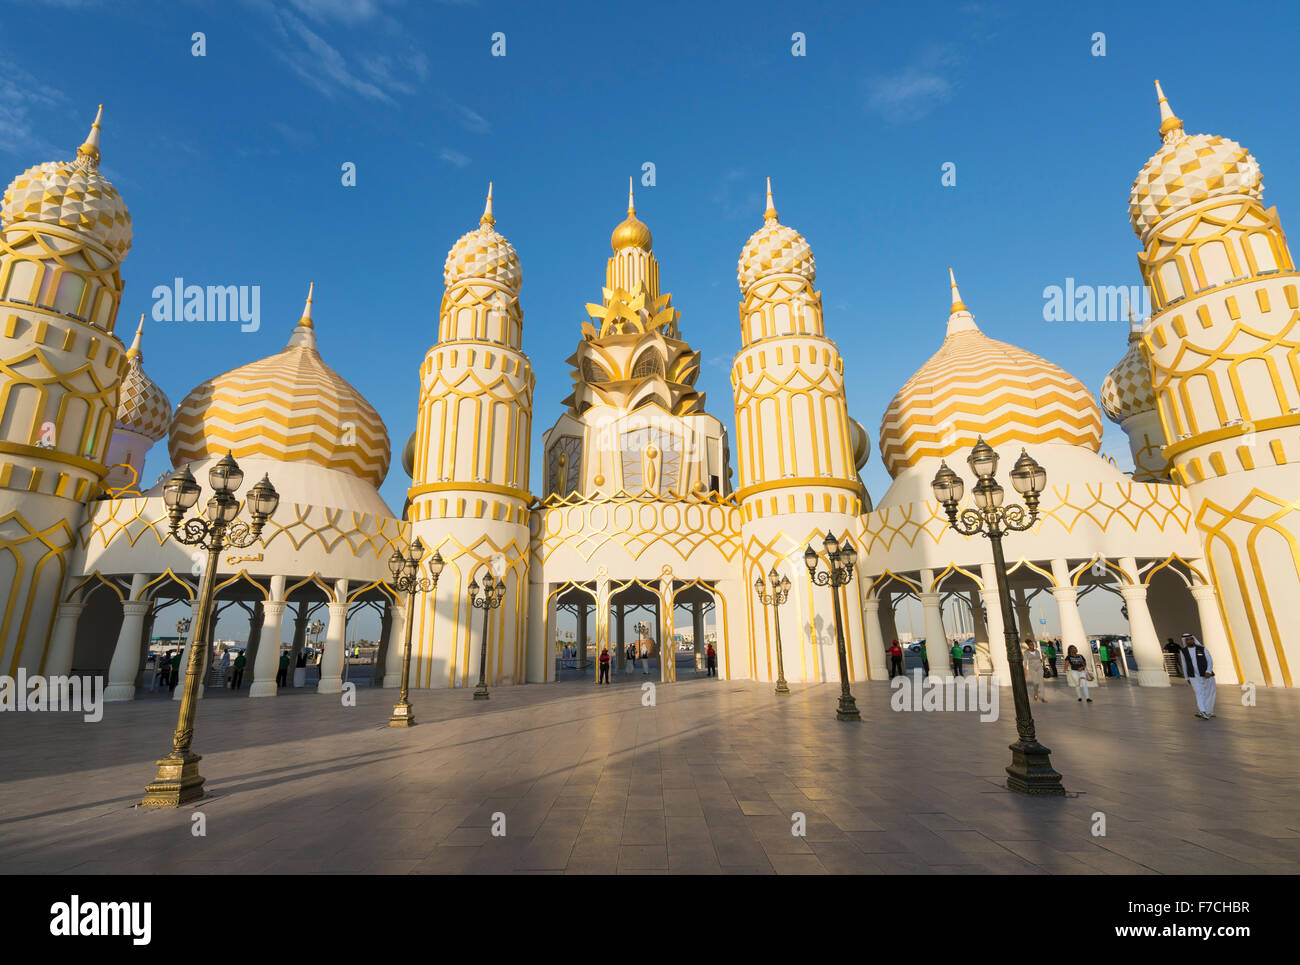 View of the  Gate of the World at Global Village 2015 in Dubai United Arab Emirates - Stock Image